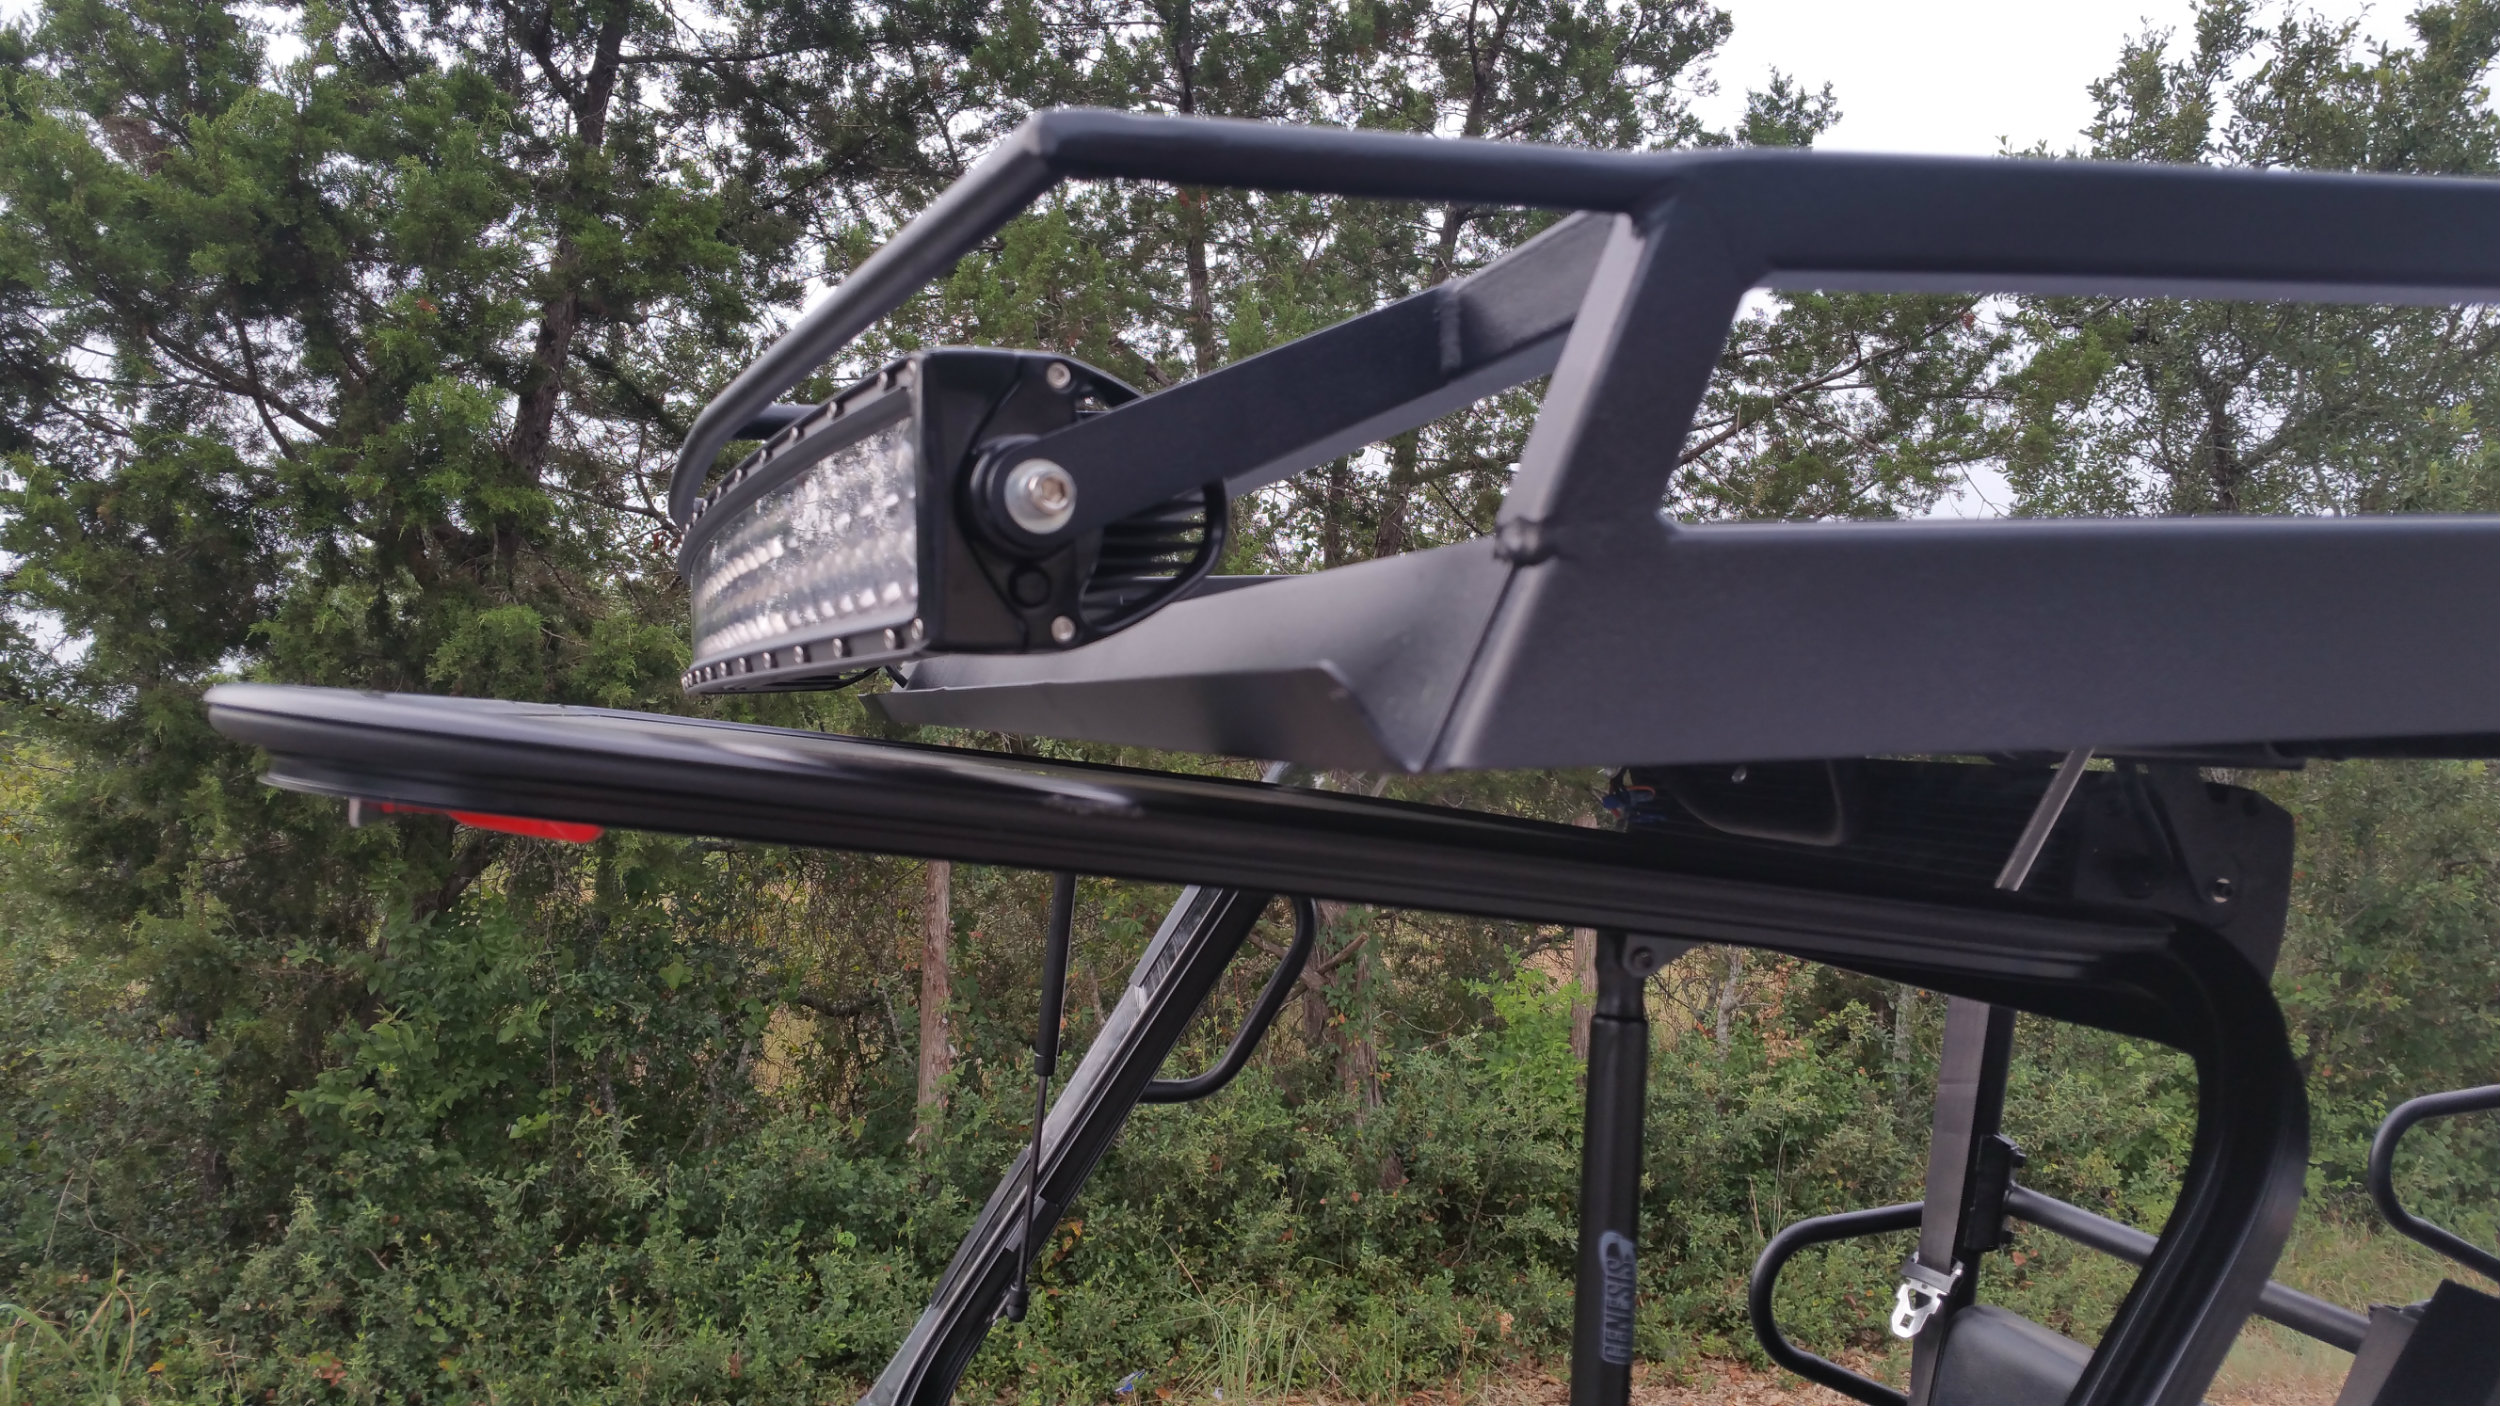 kawasaki-mule-pro-fxt-windshield-flip-out-tip-glass.jpg